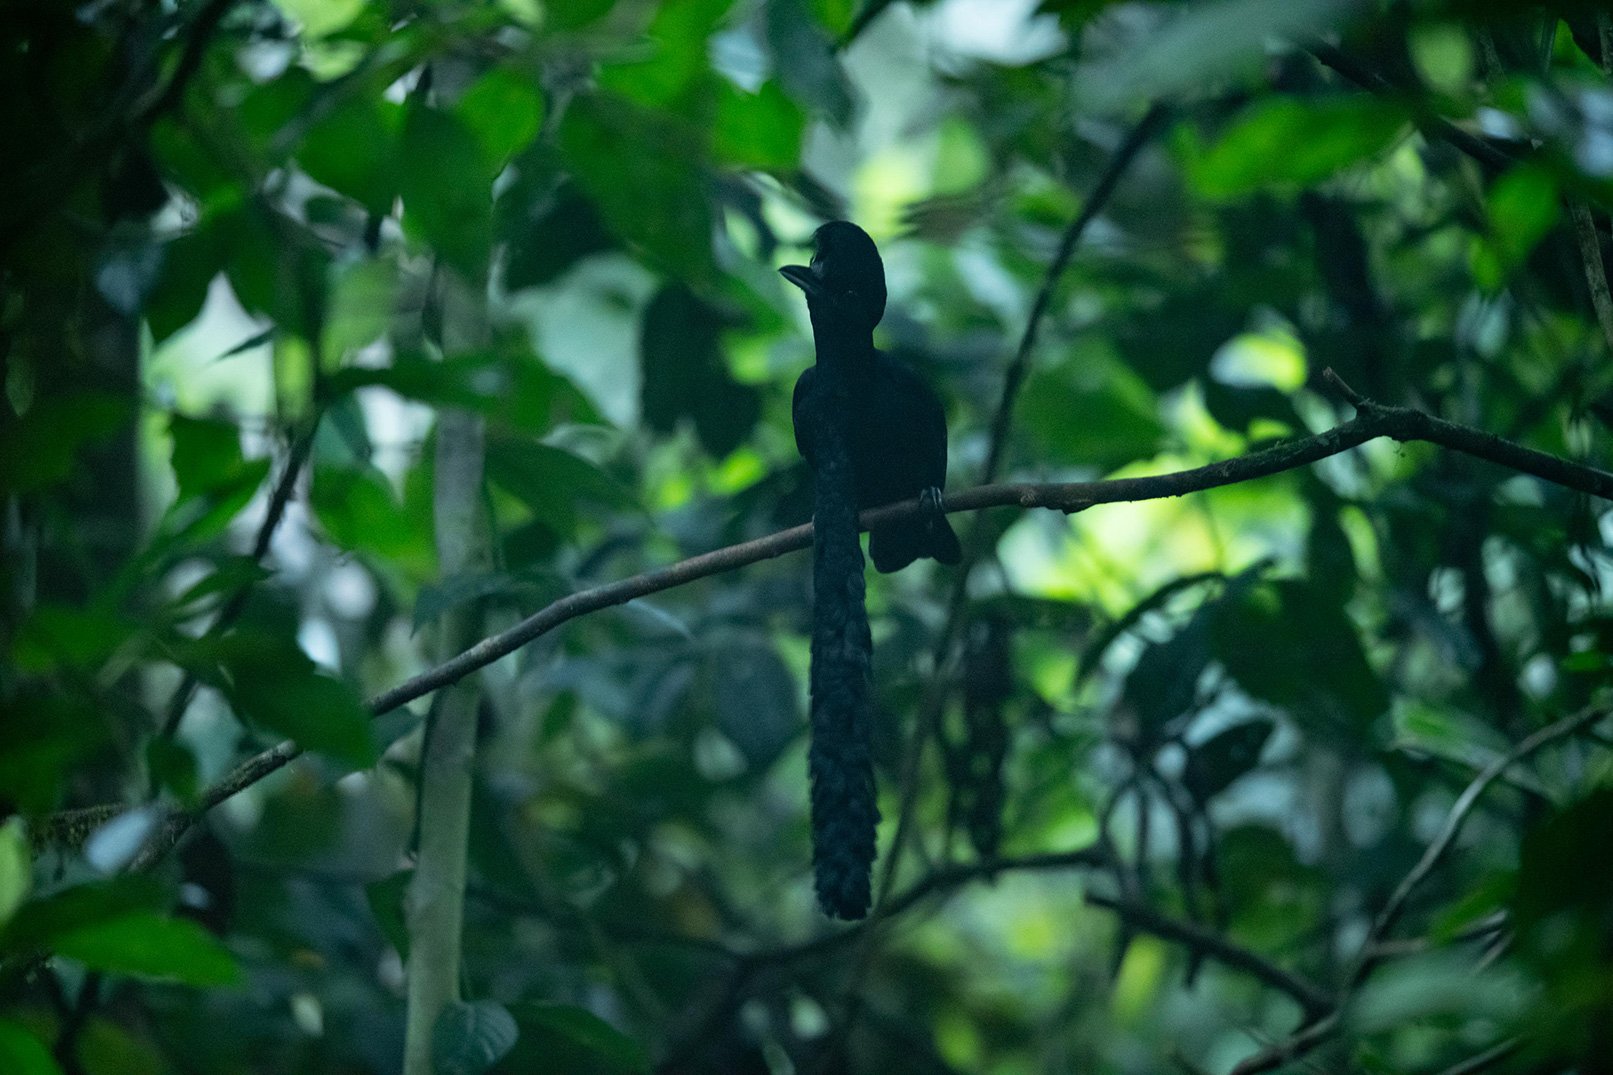 An Umbrellabird sitting on a thin tree branch